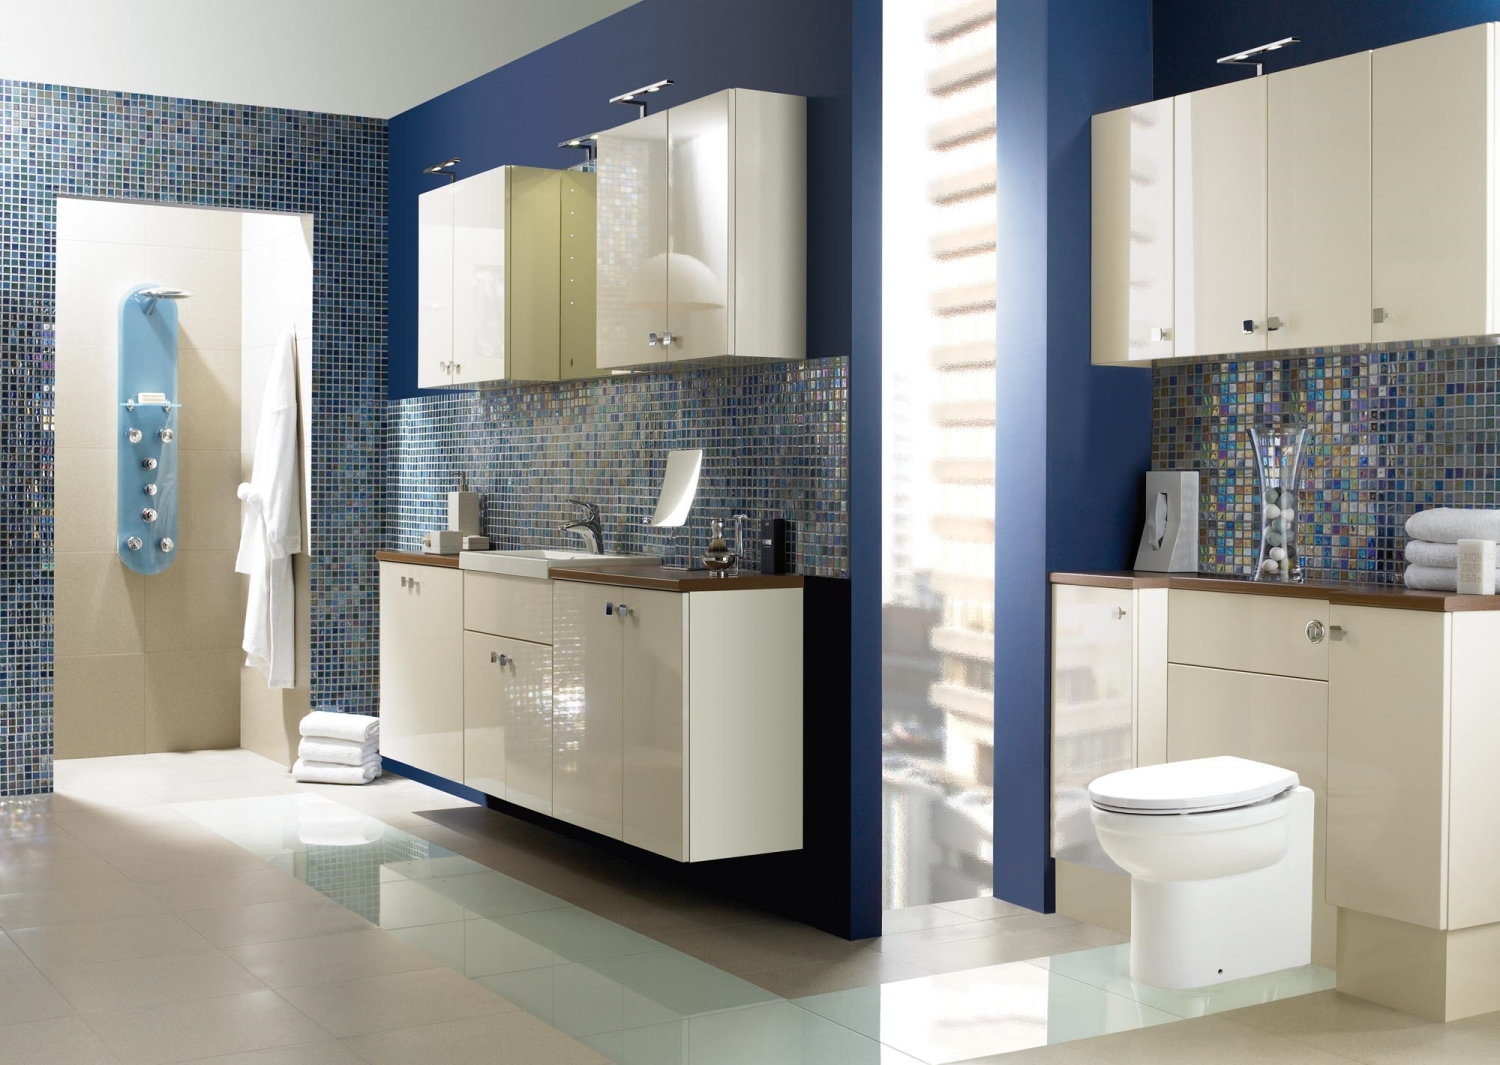 Designer kitchen and bathrooms dundee kitchen and for Bathroom design dundee